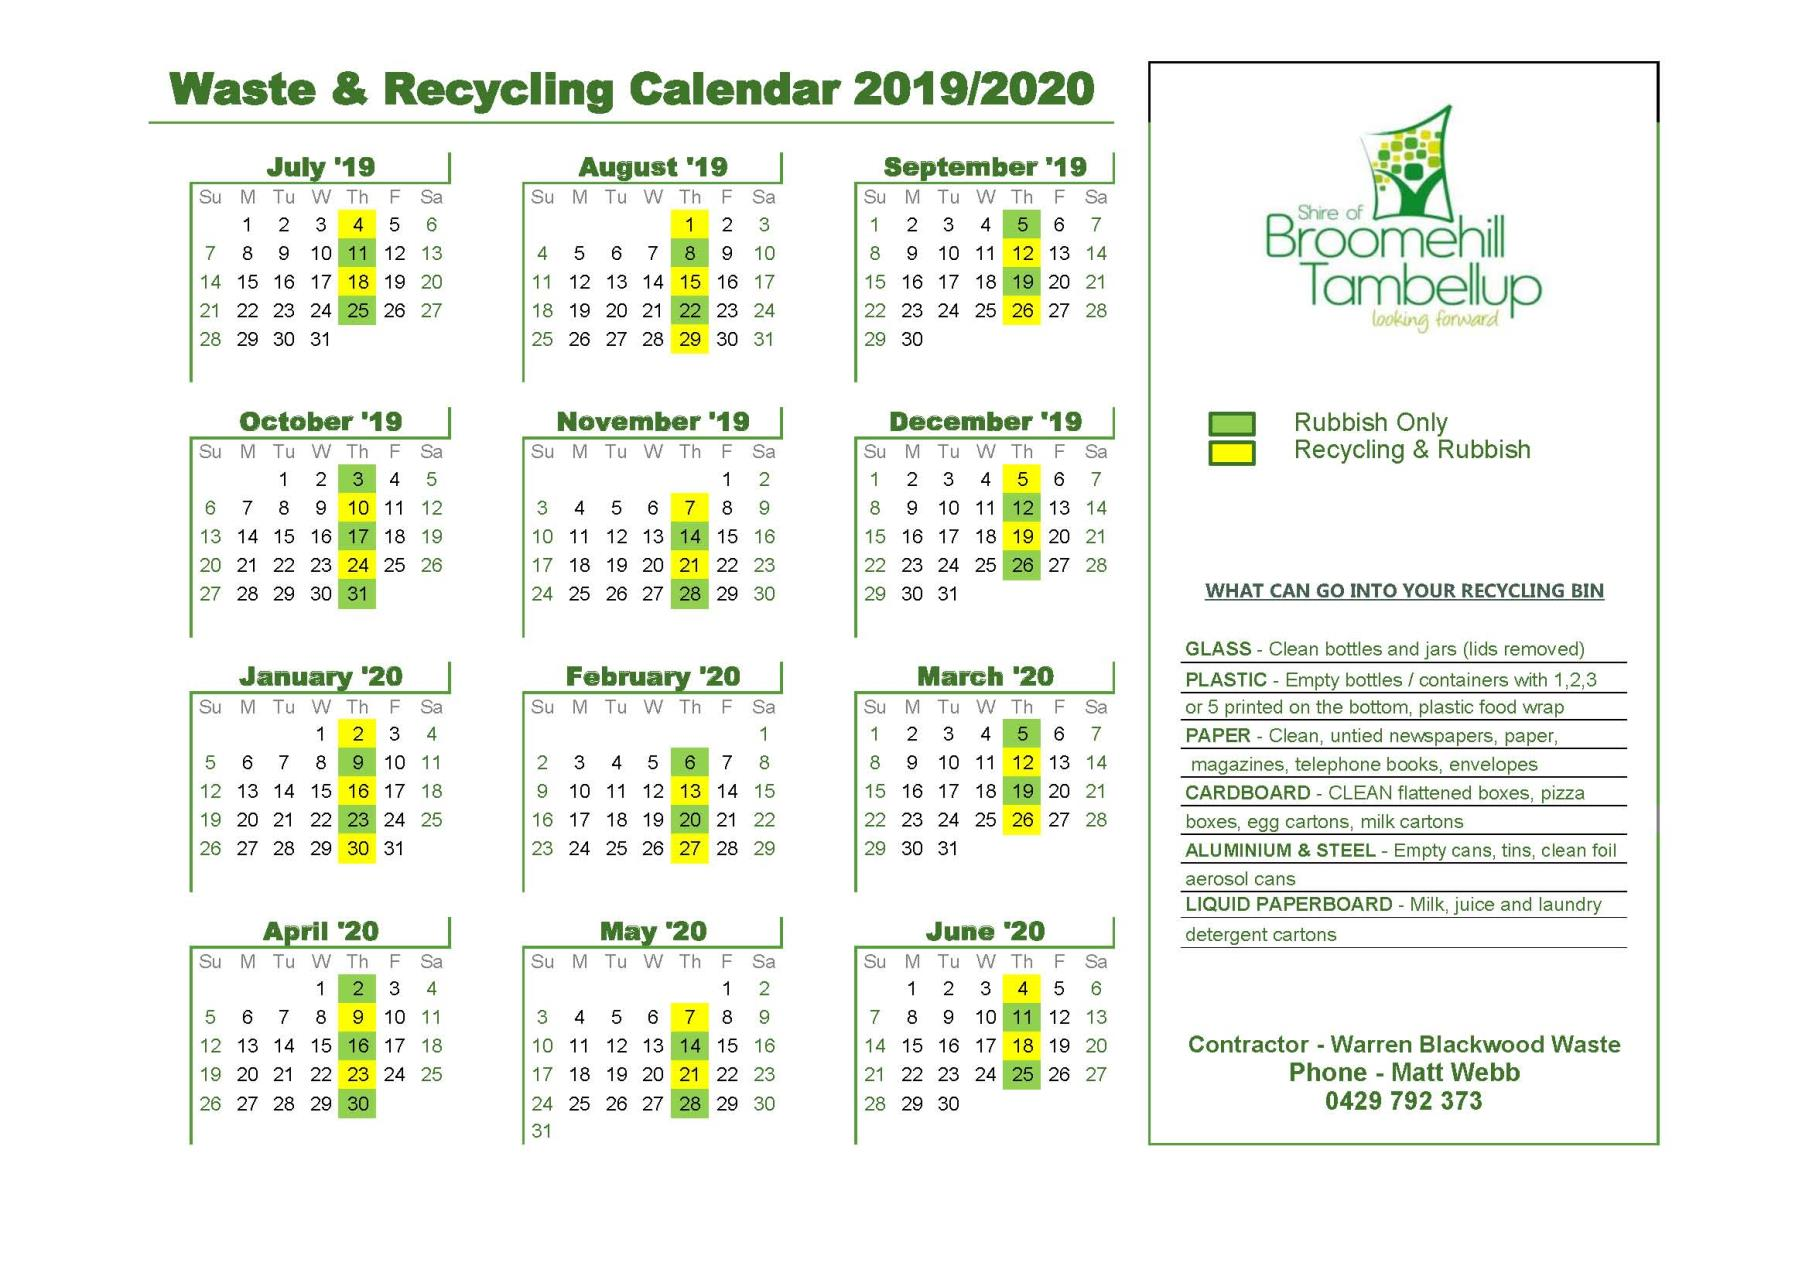 Waste & Recycling Calendar 2019/2020